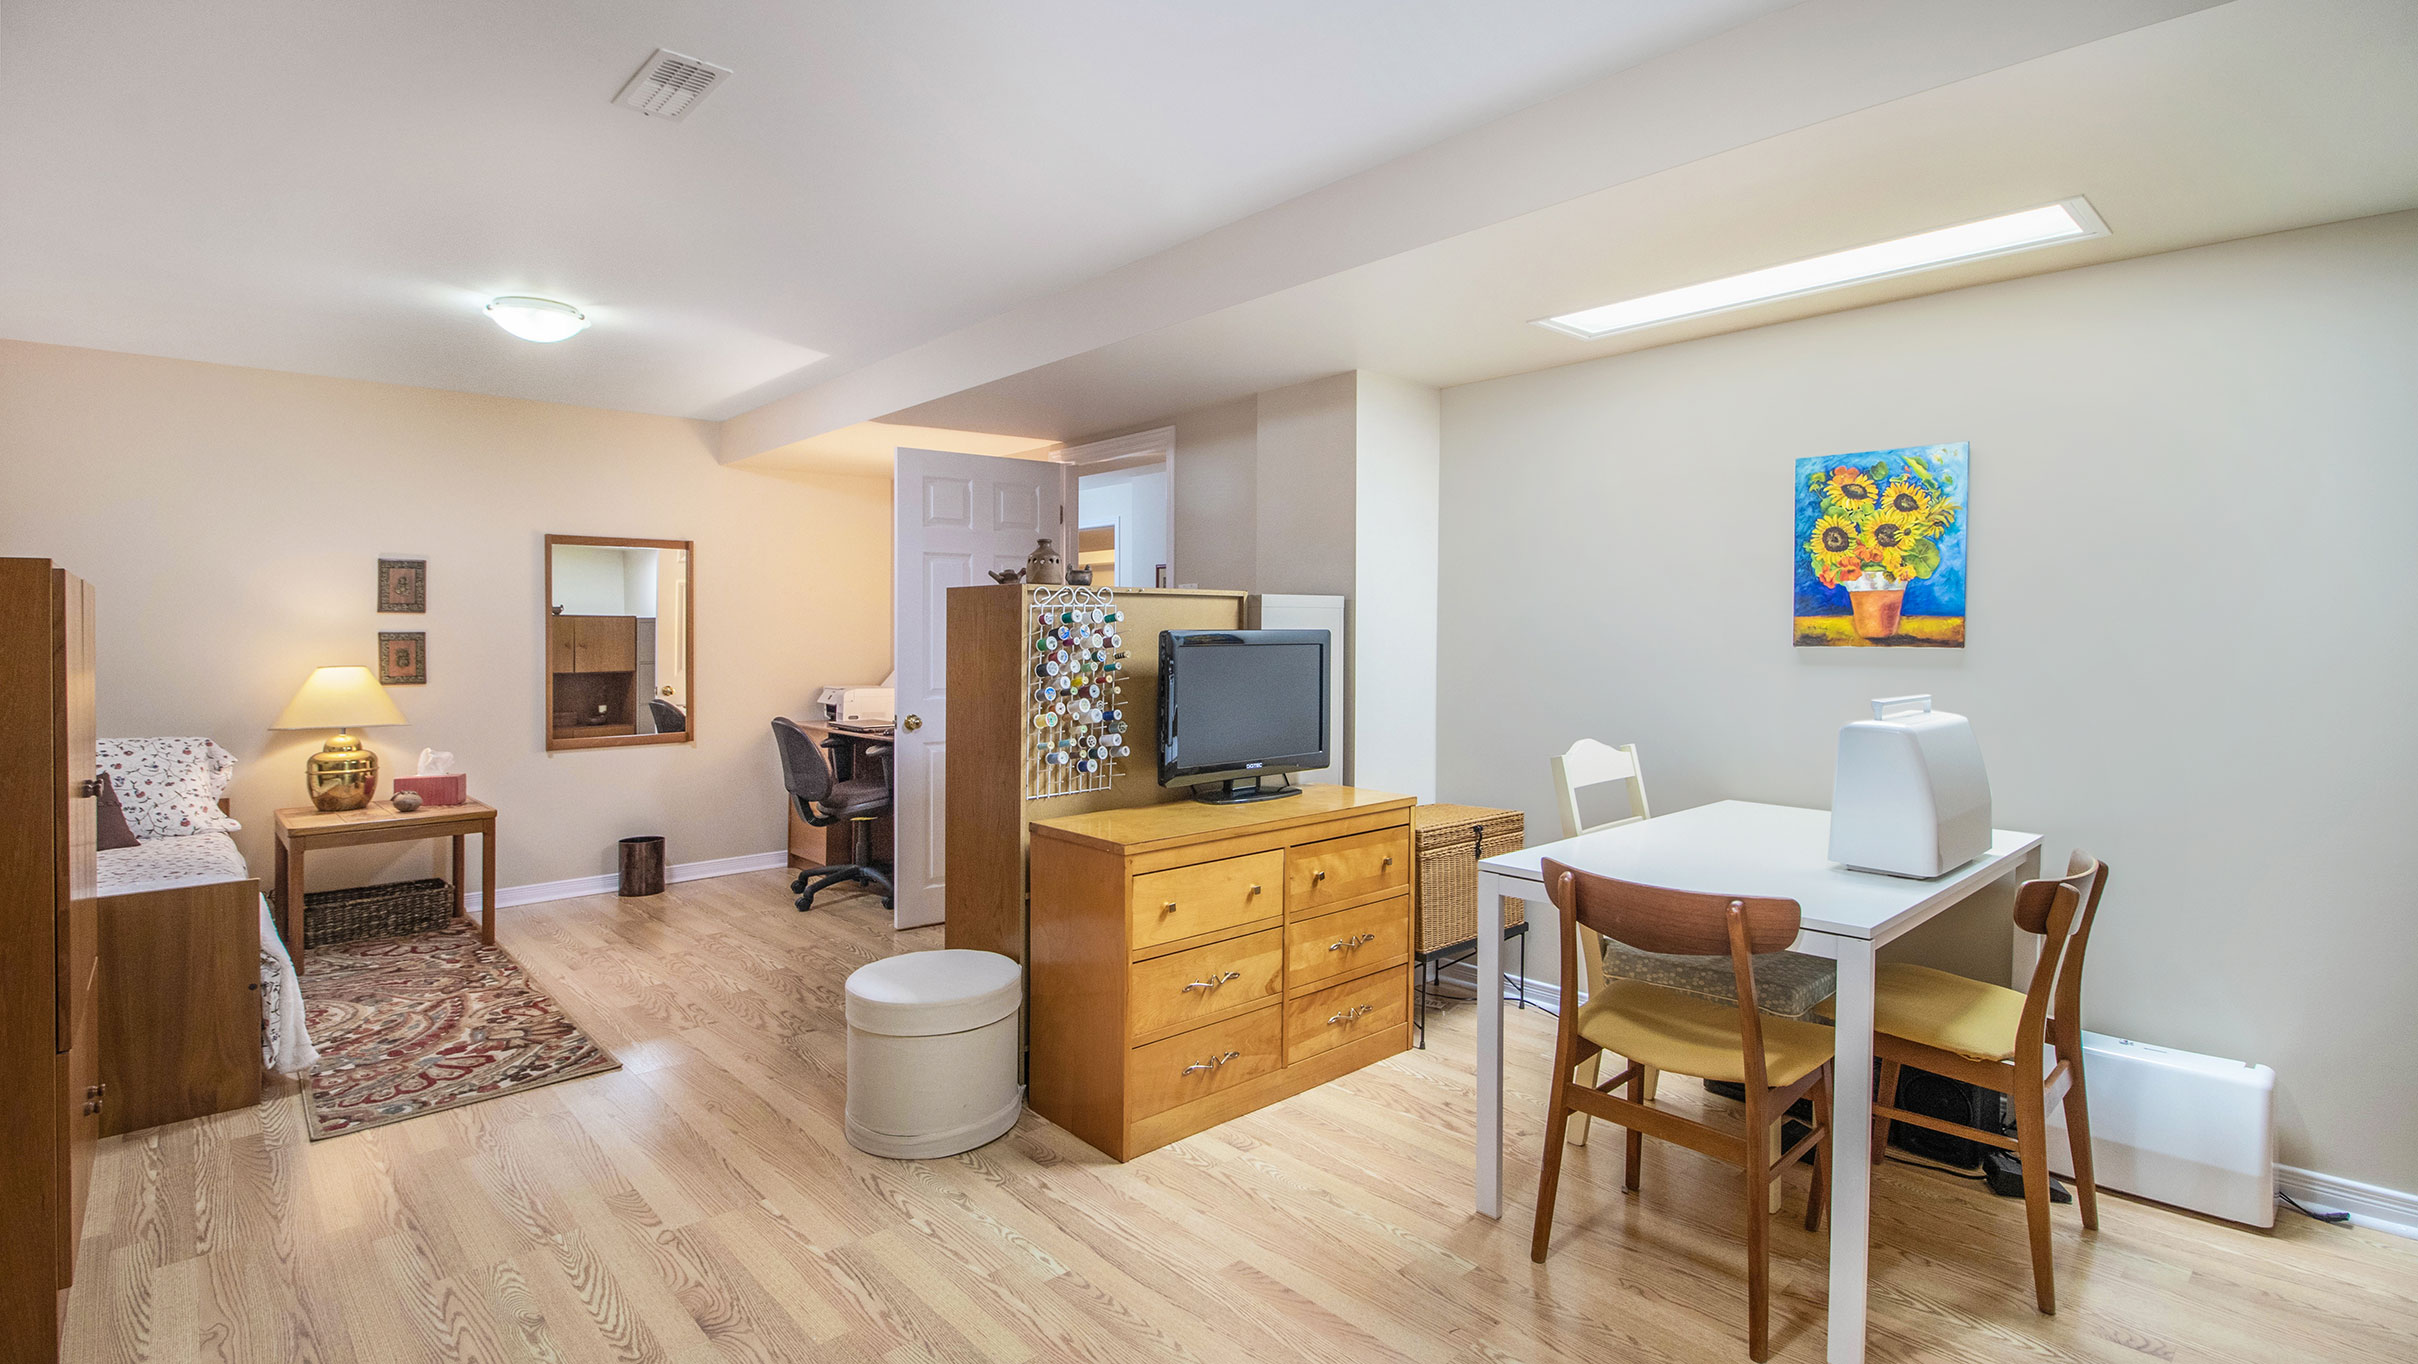 Located in the lower level, this space is typically not fully finished like this but makes for a great guest bedroom, exercise room, craft room etc.